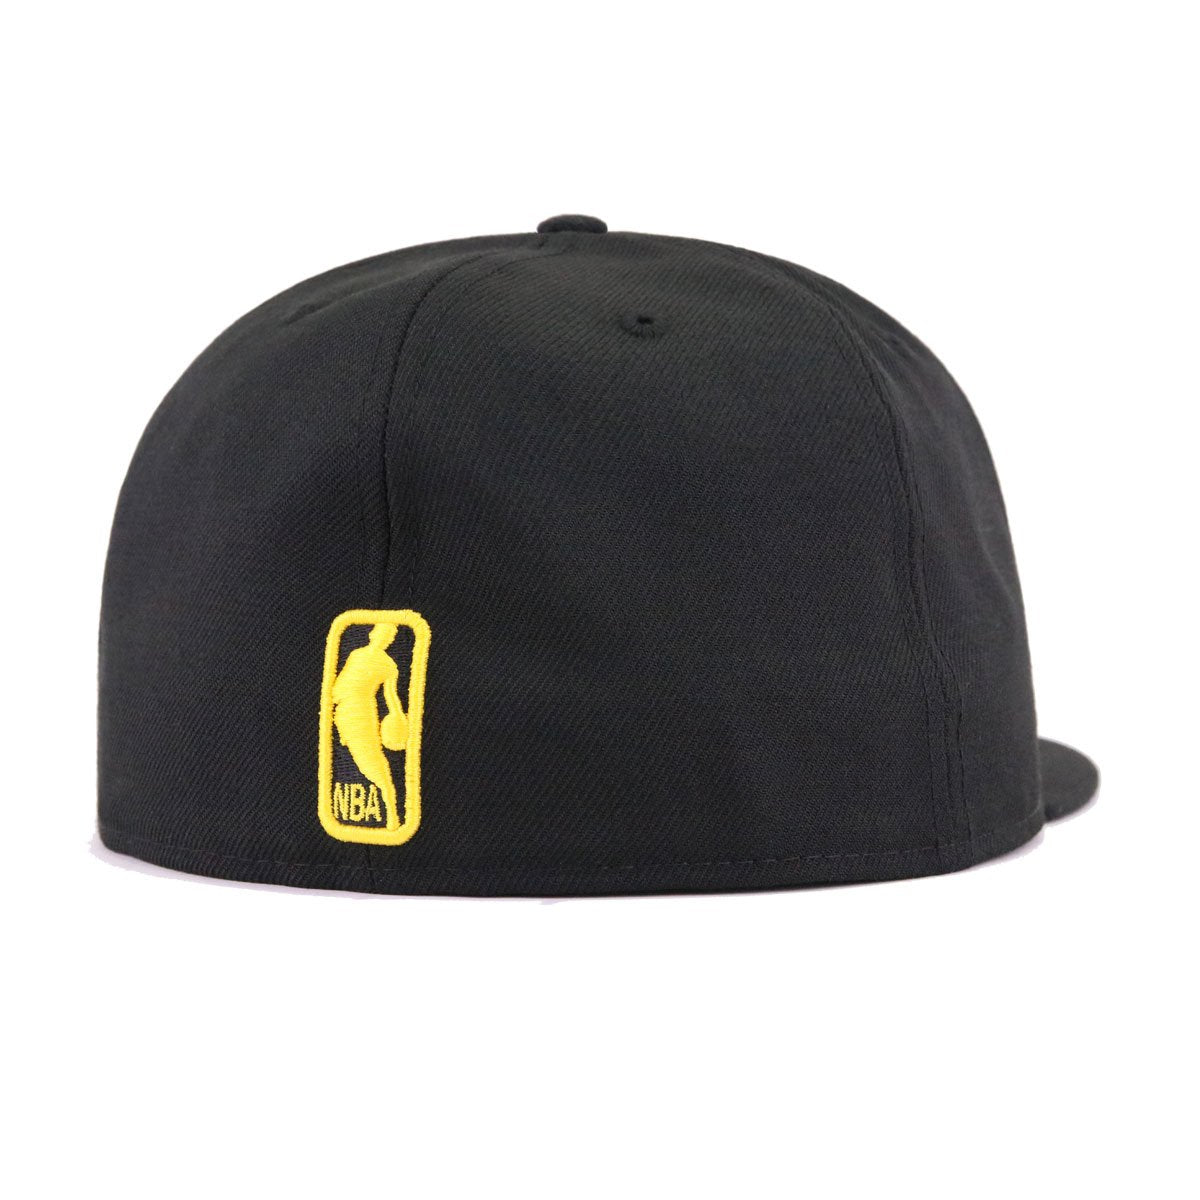 Los Angeles Lakers Black Manilla City Series New Era 59Fifty Fitted